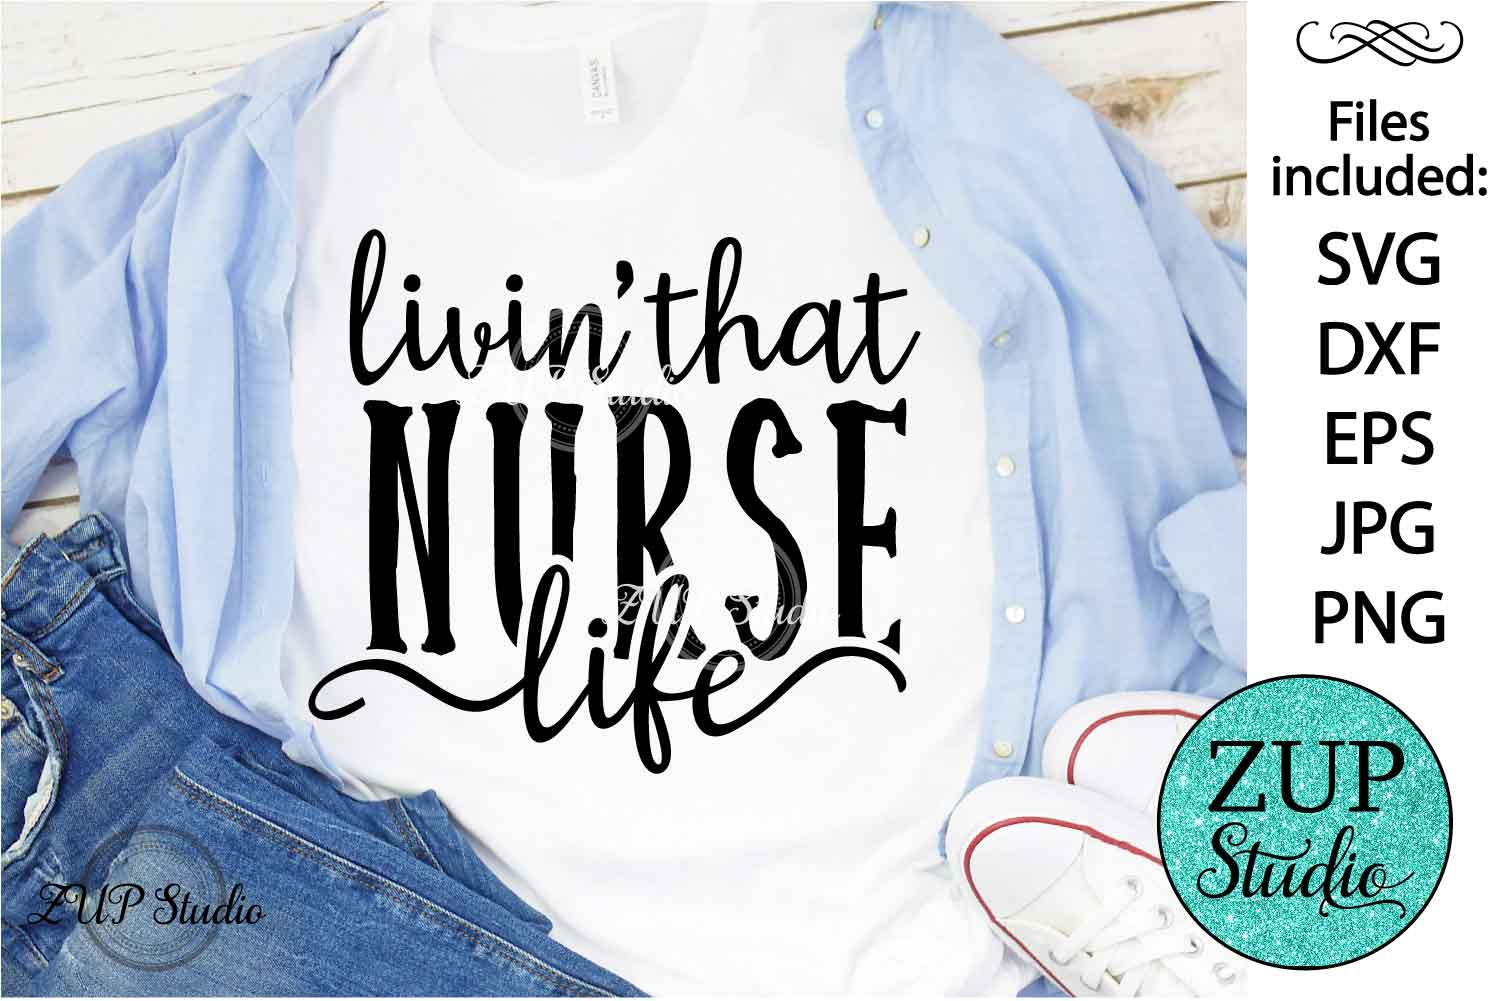 Living that nurse life SVG Design Cutting Files 389 example image 1